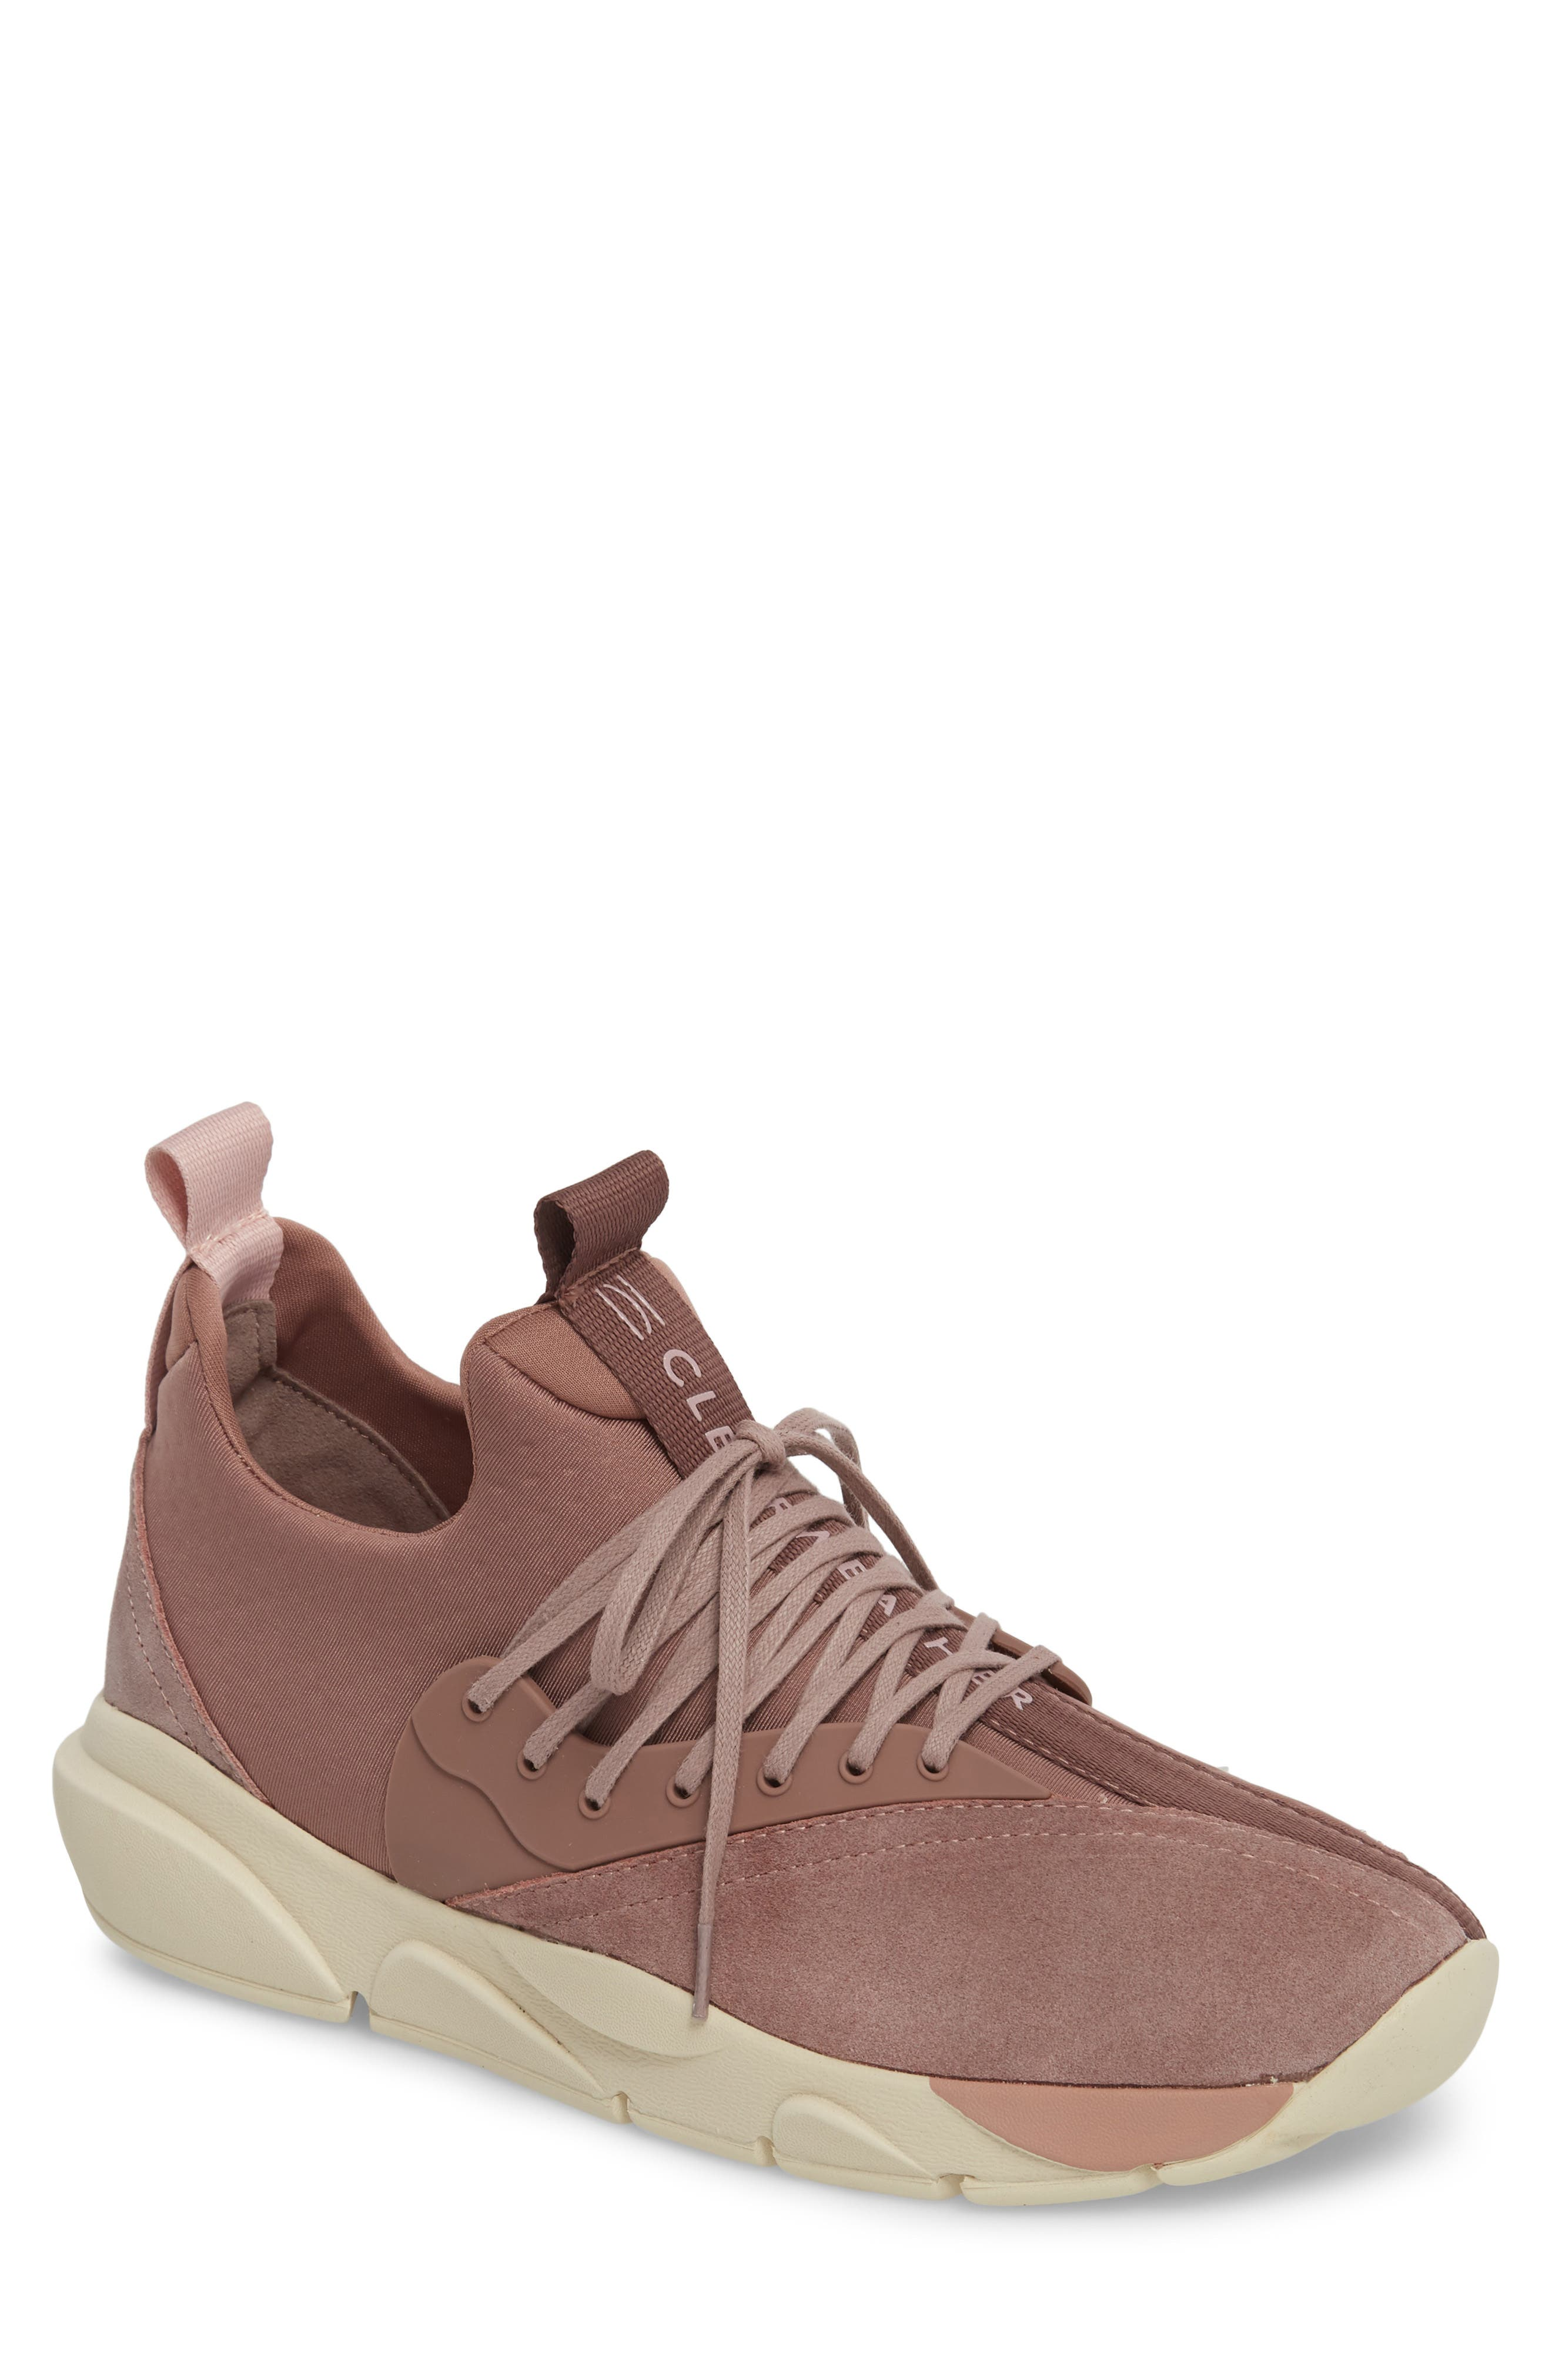 CLEARWEATHER The Cloud Stryke Sneaker, Main, color, 650